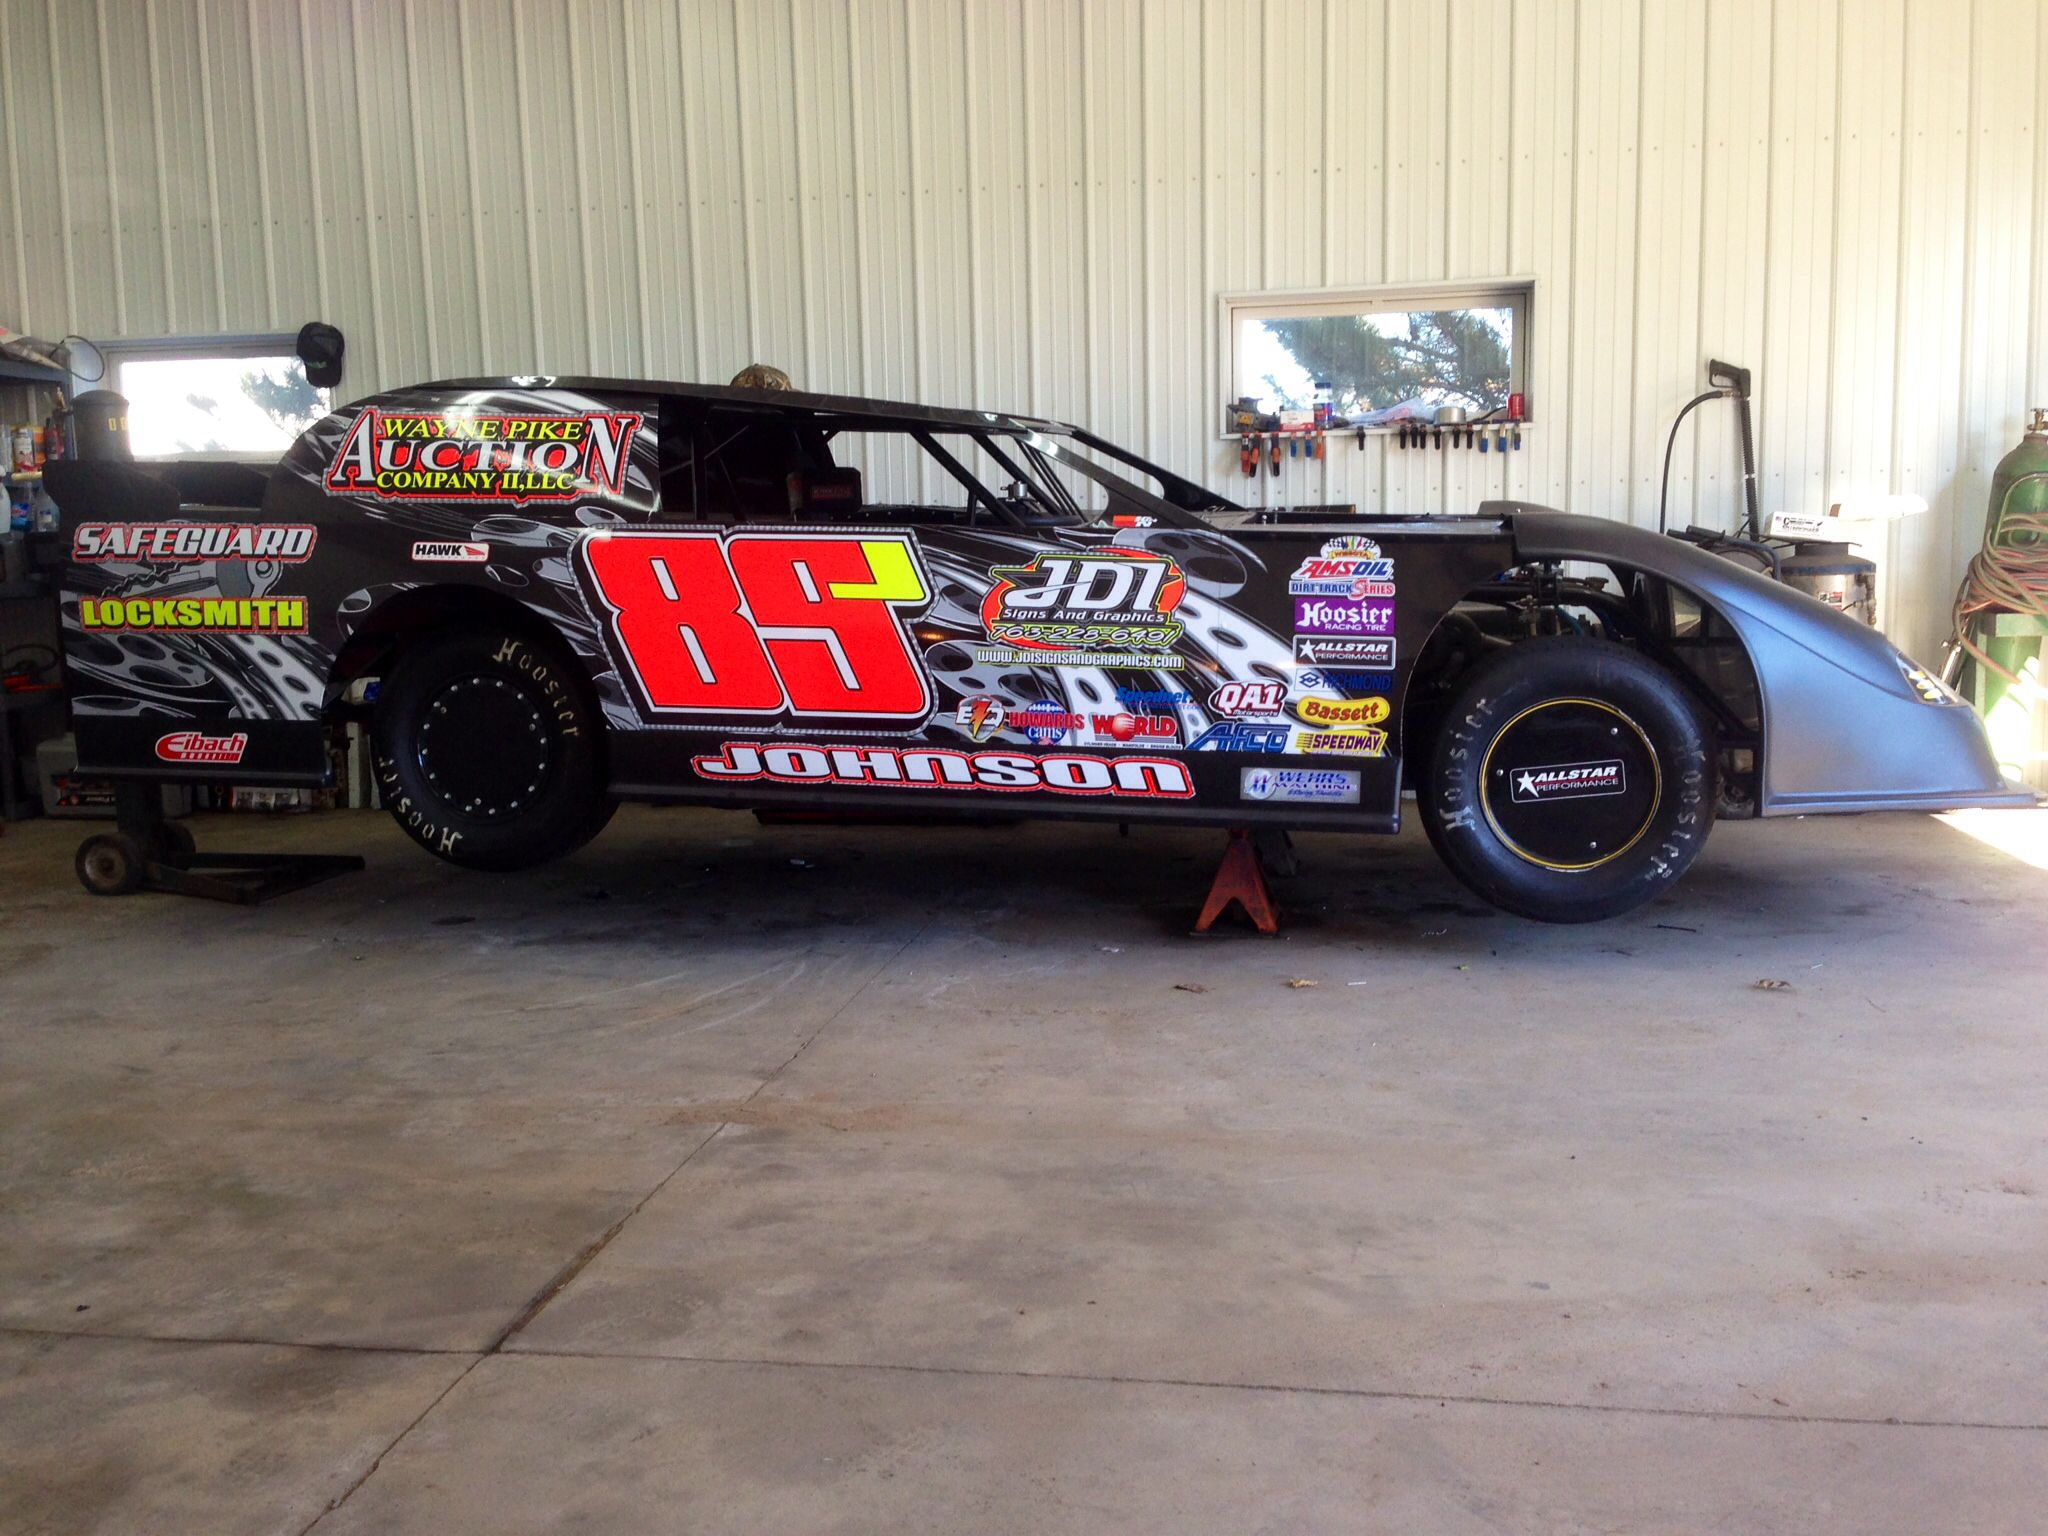 Pin By Speed Shop North On Super Stock Racing Dirt Track Cars Dirt Late Models Dirt Racer